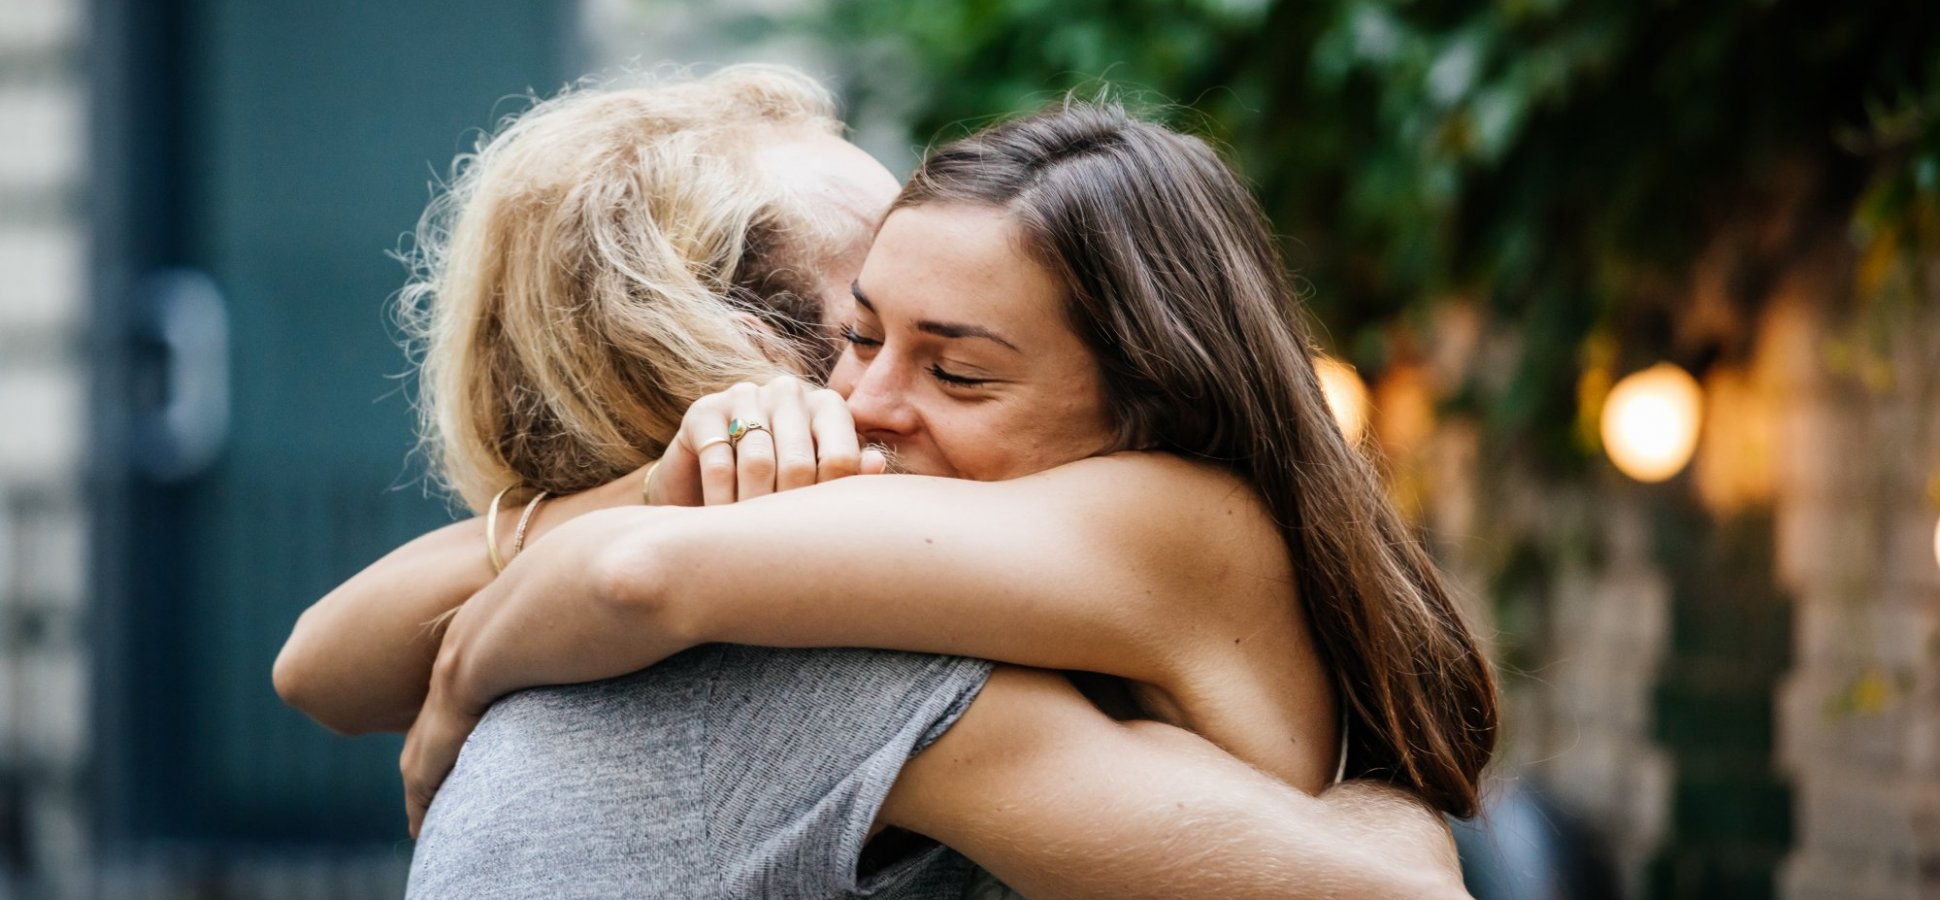 Kindness Doesn't Just Make You Healthier, It Can Actually Slow Aging, New Research Shows